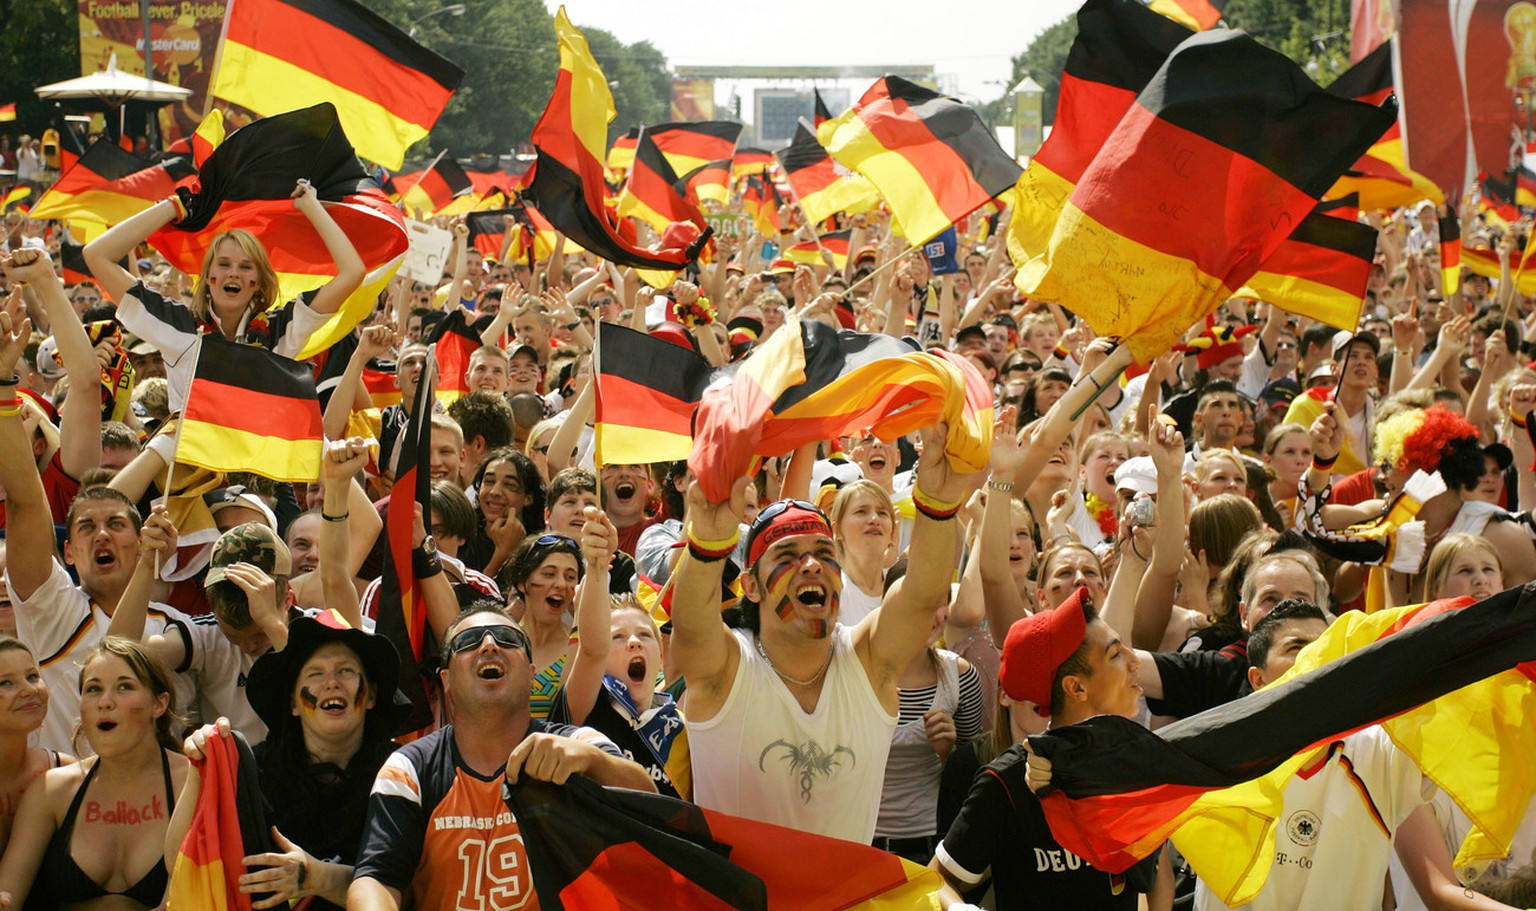 German soccer fans cheer as Germany scores the first goal during the World Cup soccer match Germany against Ecuador as they watch the game on a giant TV screen at the public viewing area in Berlin, Tuesday, June 20, 2006. The other teams in Group A are Costa Rica and Poland.  (AP Photo/Franka Bruns) ** zu unserem Paket 'DEU FUSSBALL WM RUECKBLICK' **